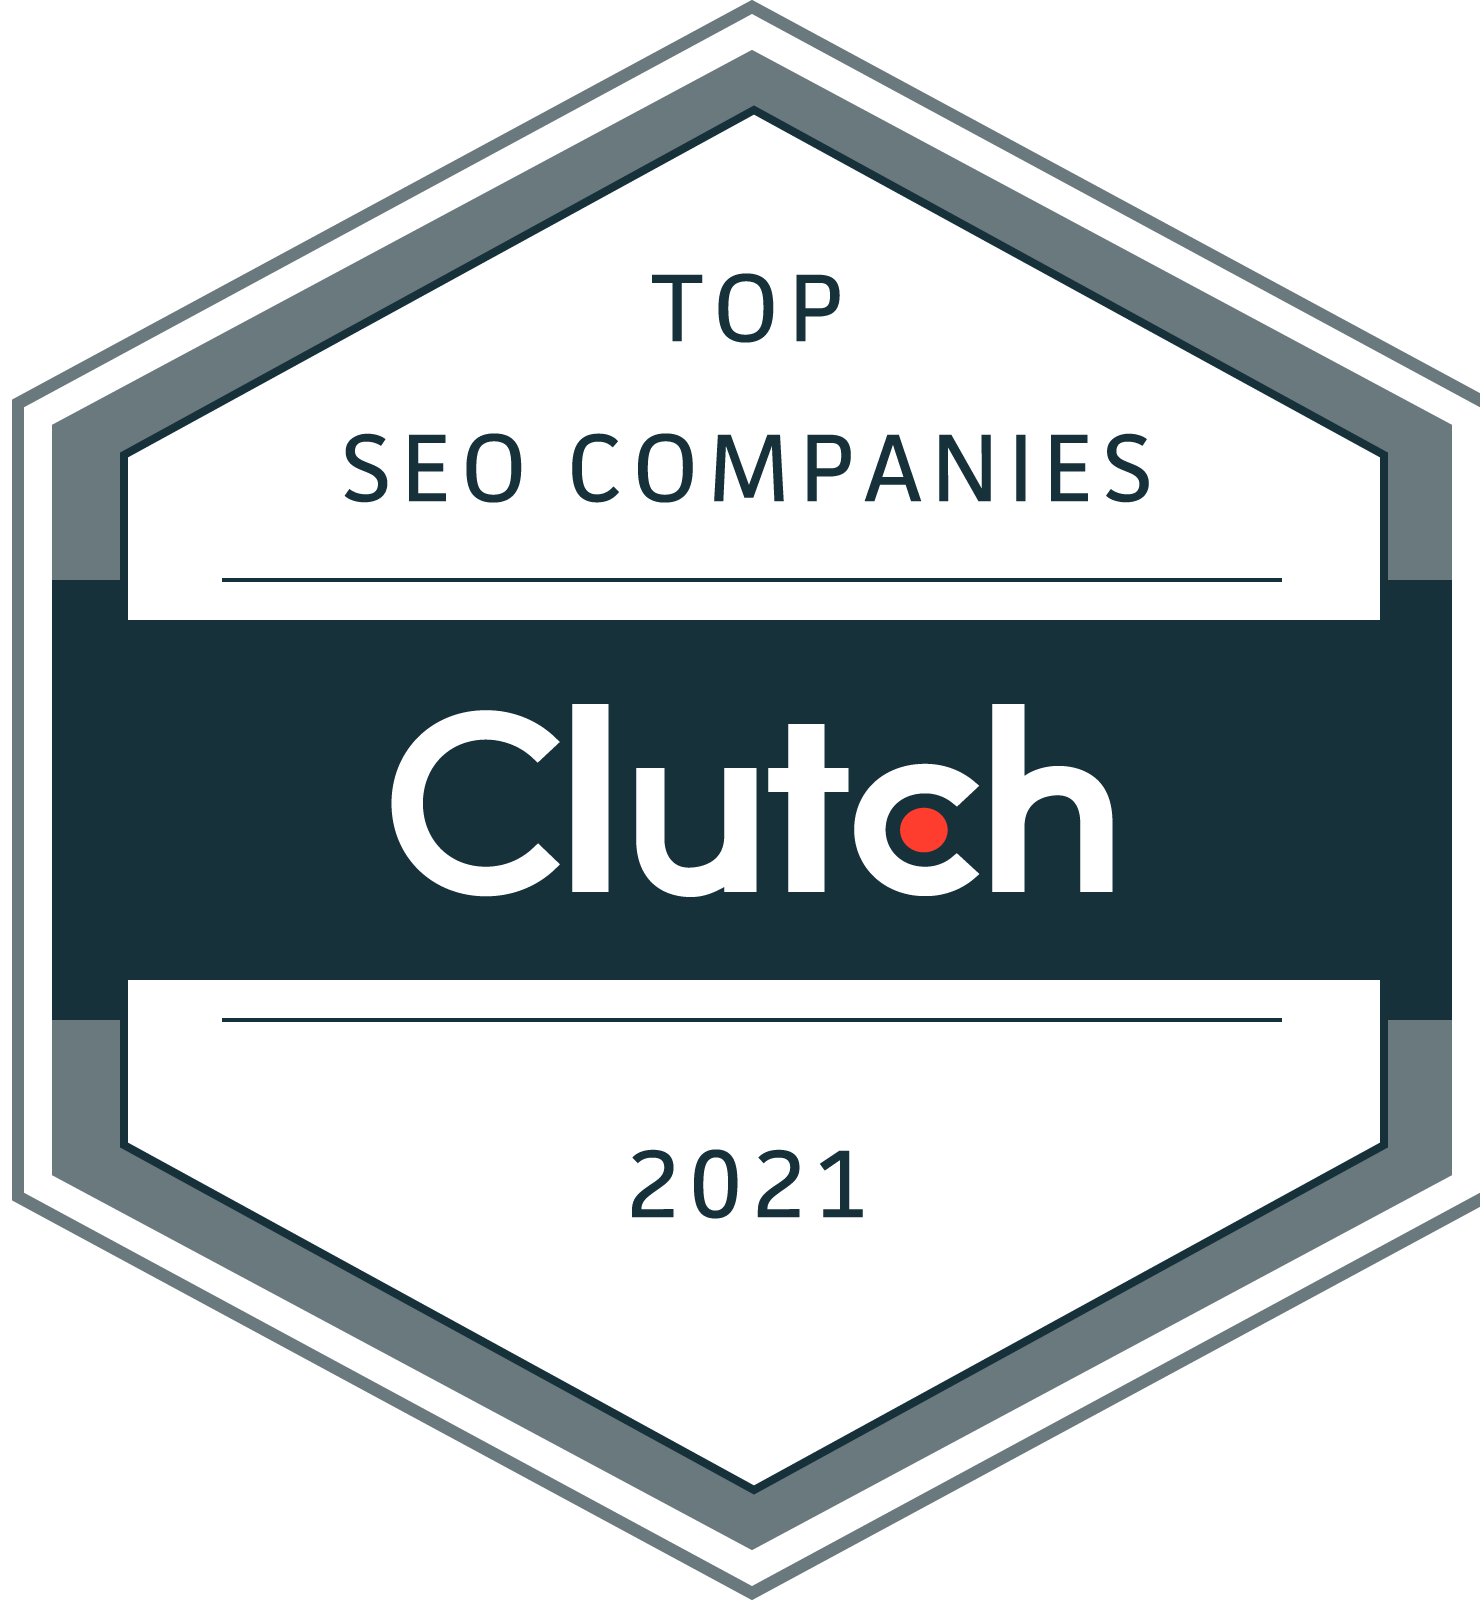 Top SEO Companies 2021 by Clutch